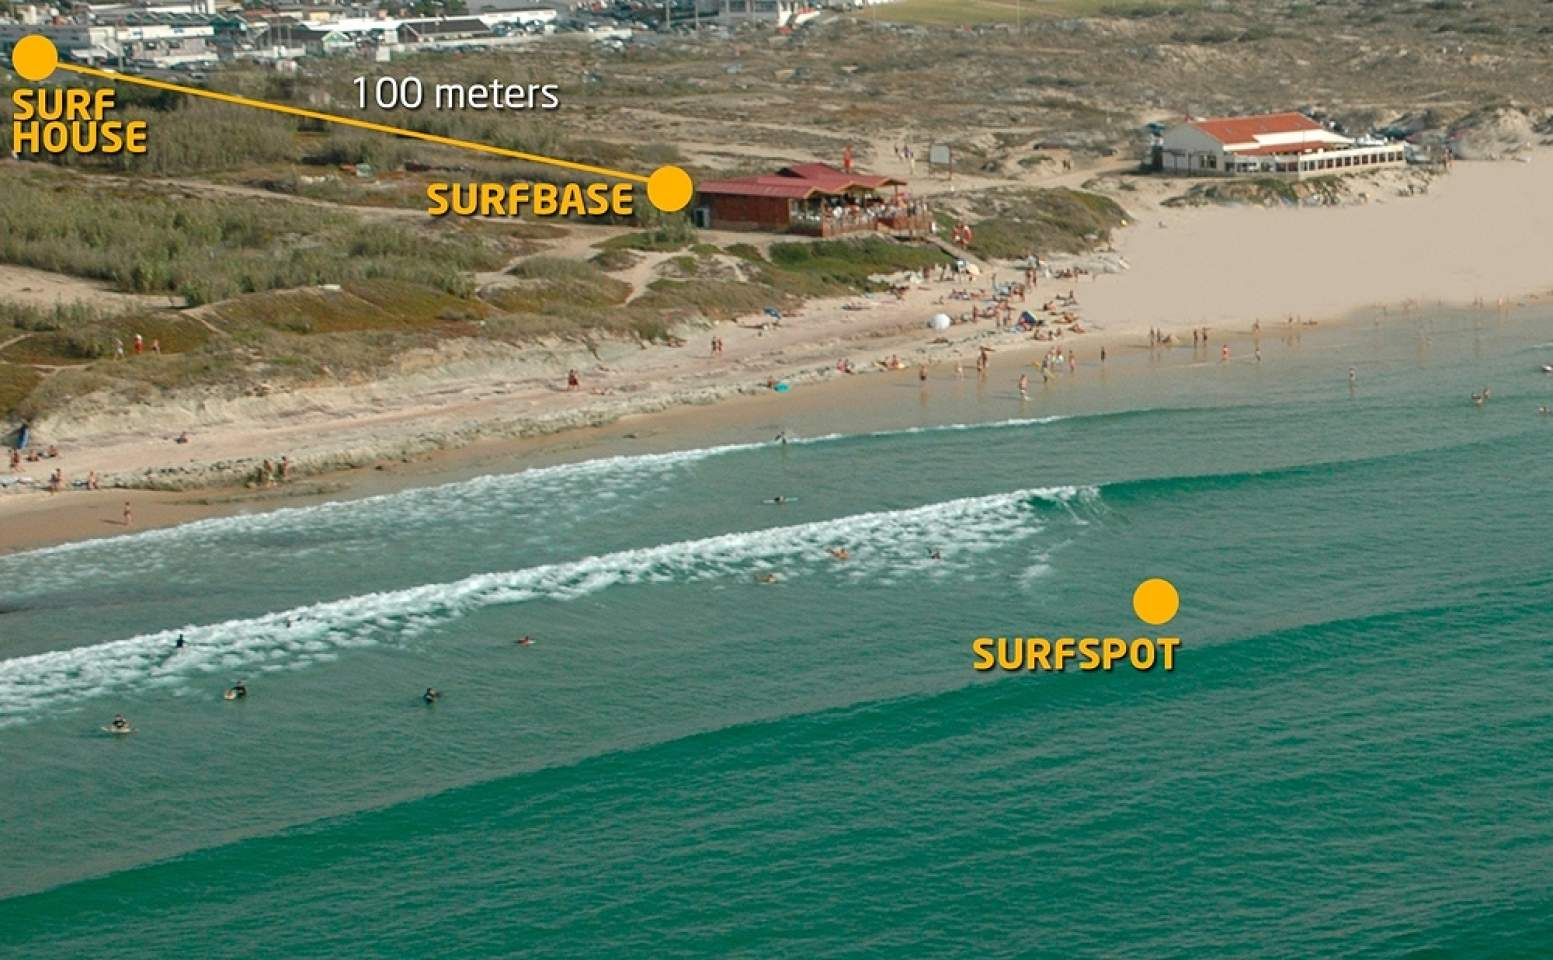 https://www.surfholidays.com/accommodation/portugal/peniche/baleal-surf-camp